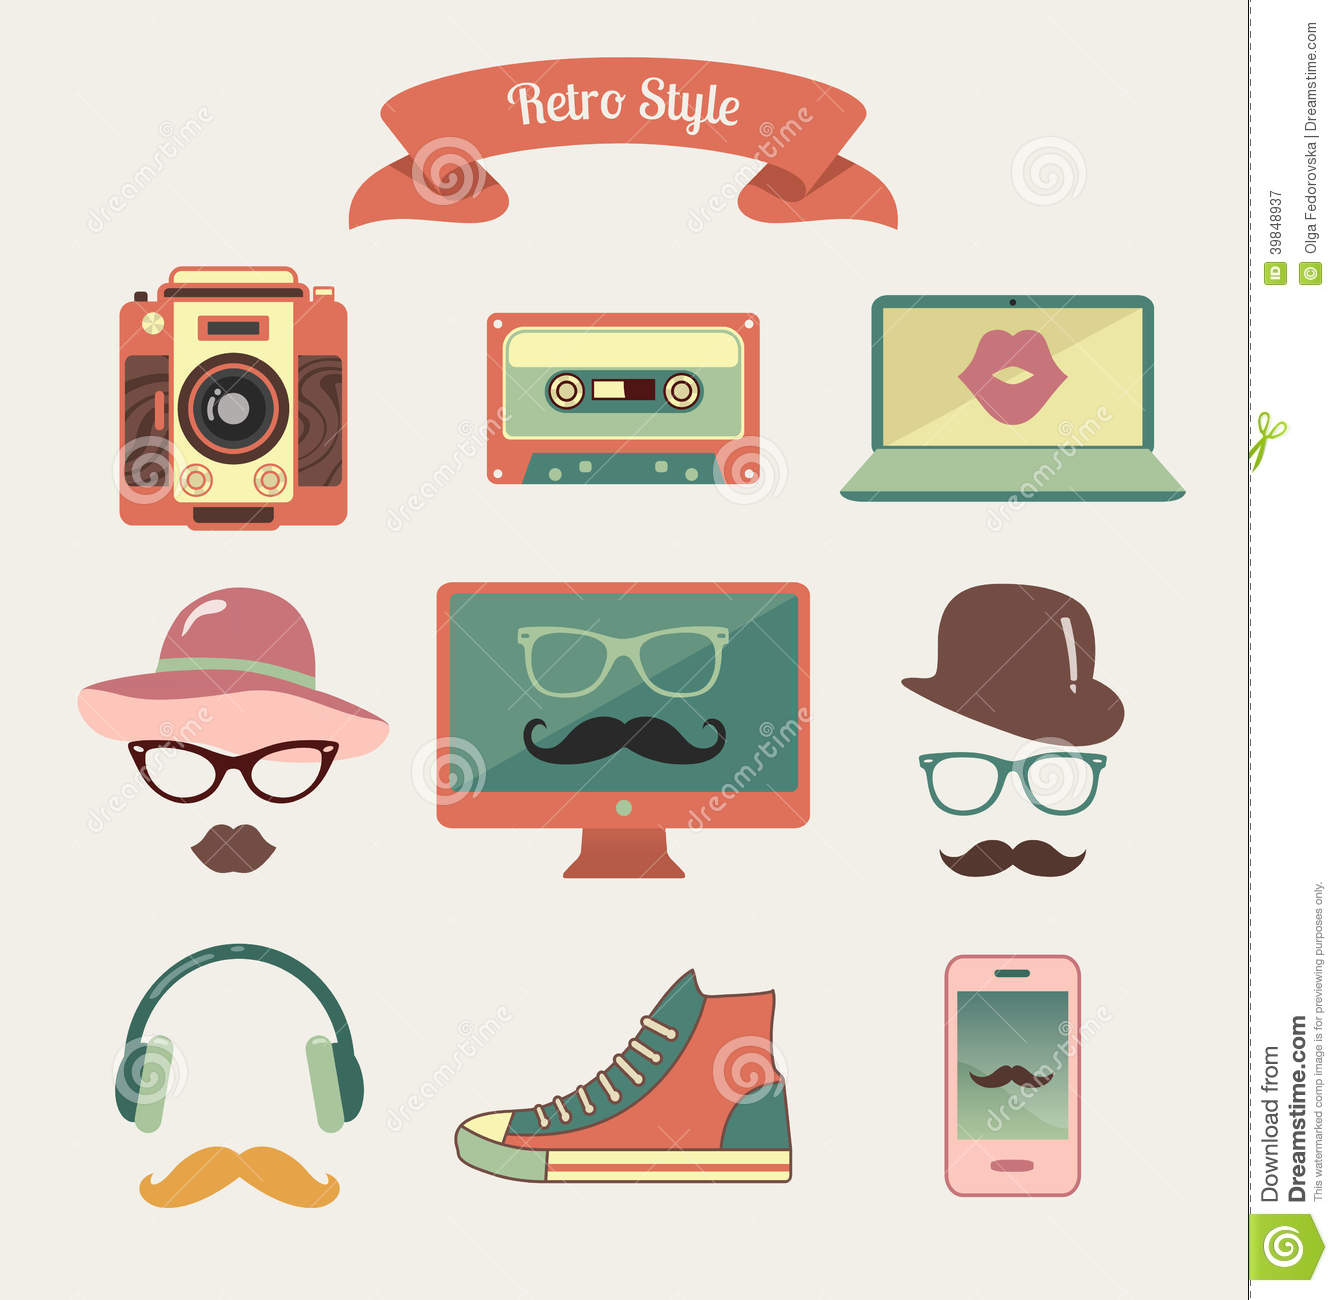 Vintage Retro Hipster Style Media Icons Stock Vector Image 39848937